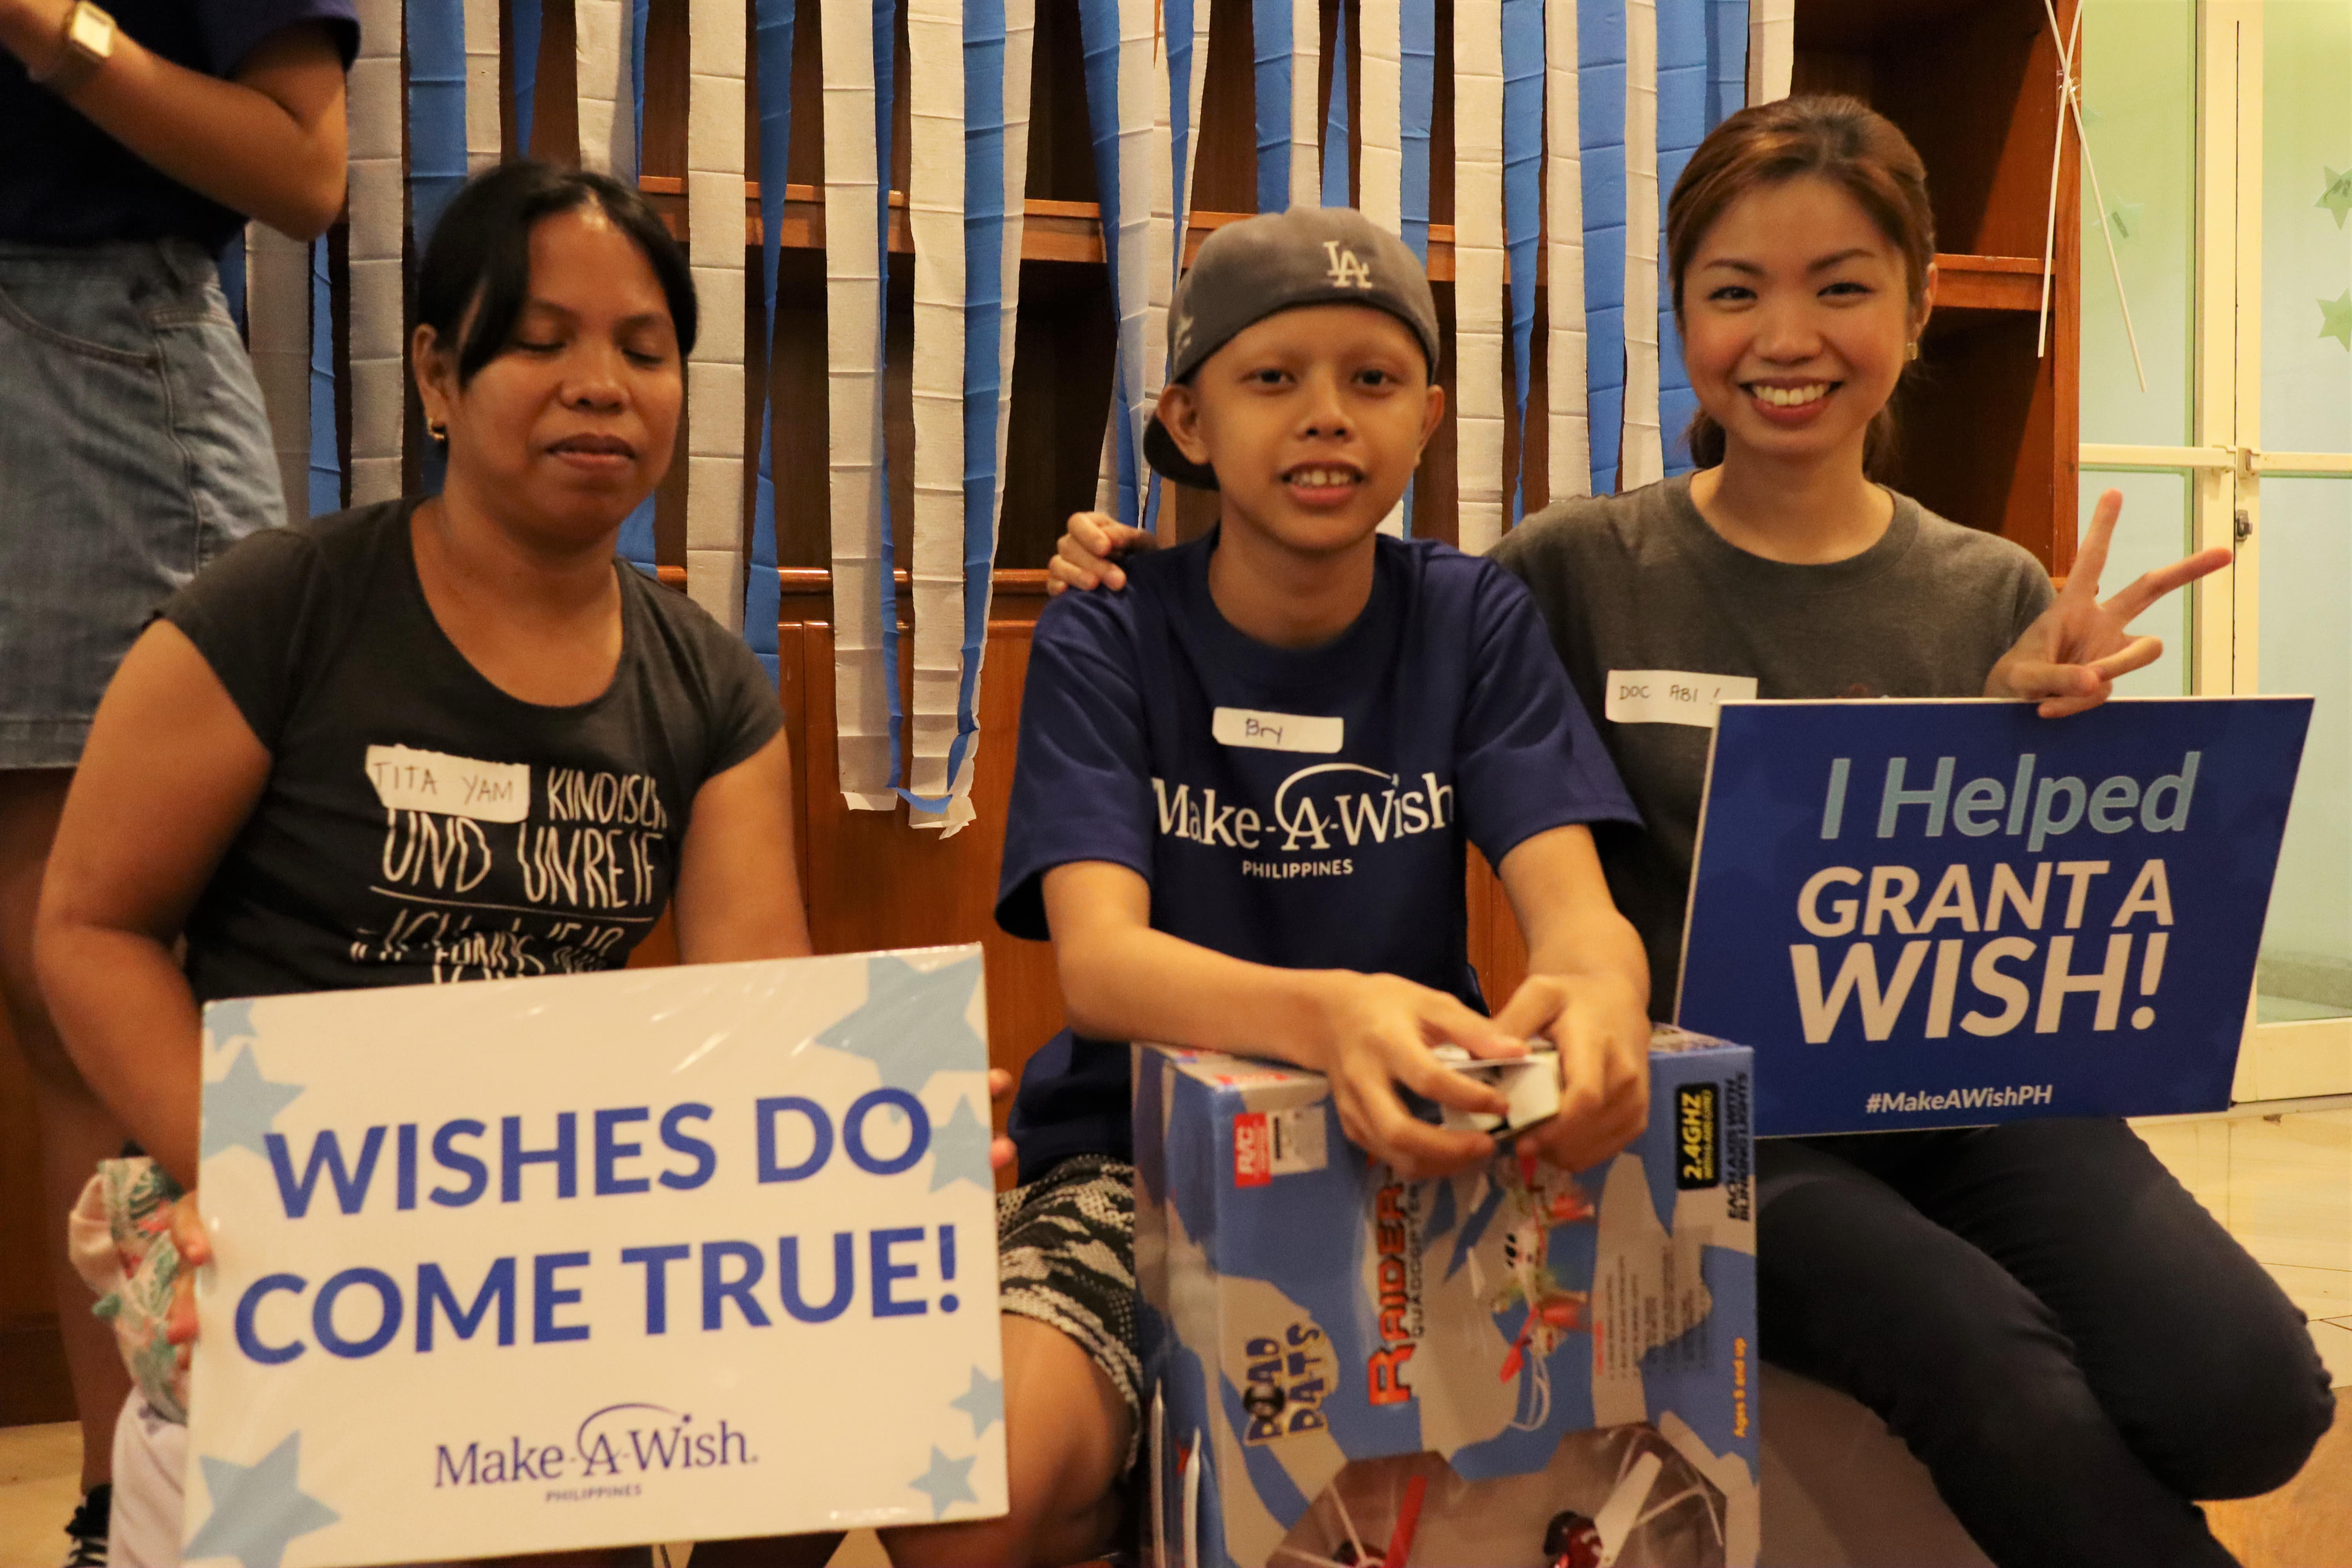 More Than Medicine: The Impact of a Wish through the Eyes of a Doctor